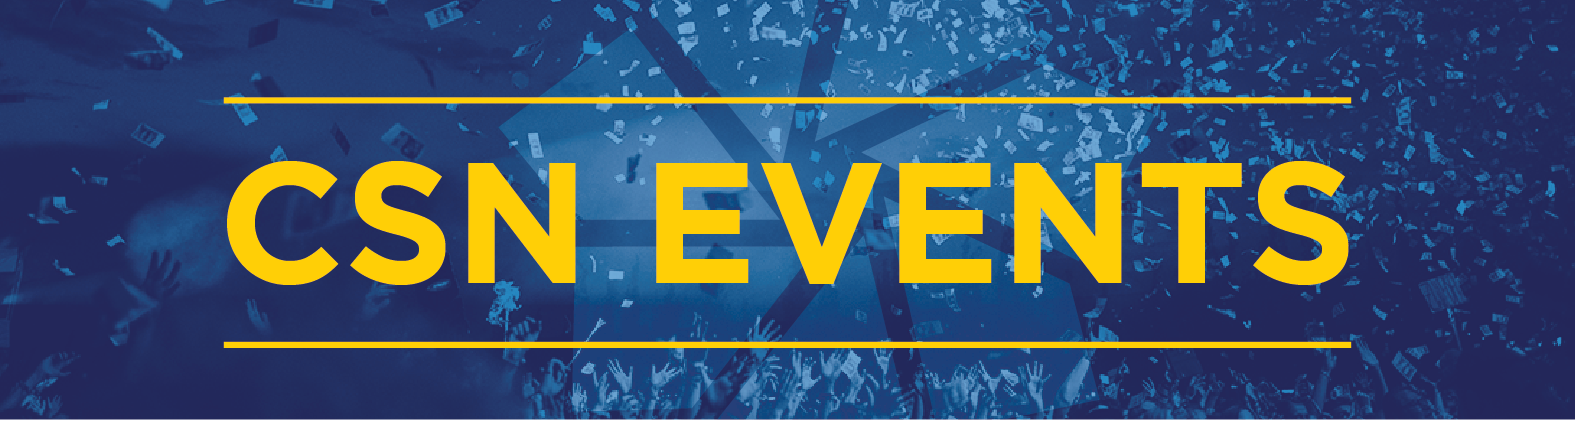 CSN Events Banner